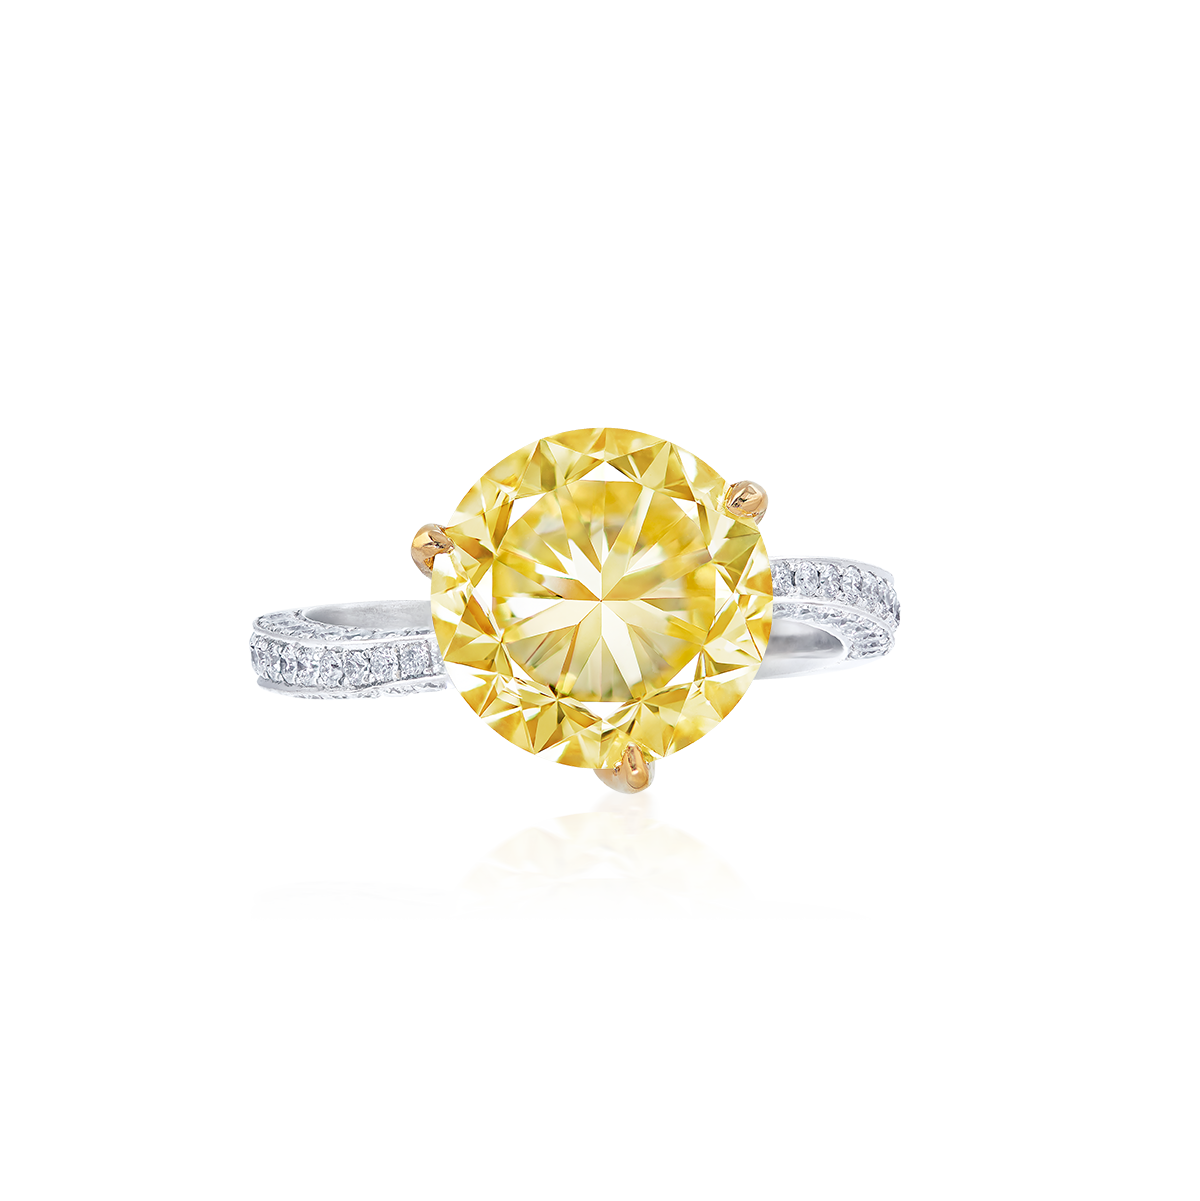 阿波羅之冠 濃彩黃鑽鑽戒 4.15 克拉